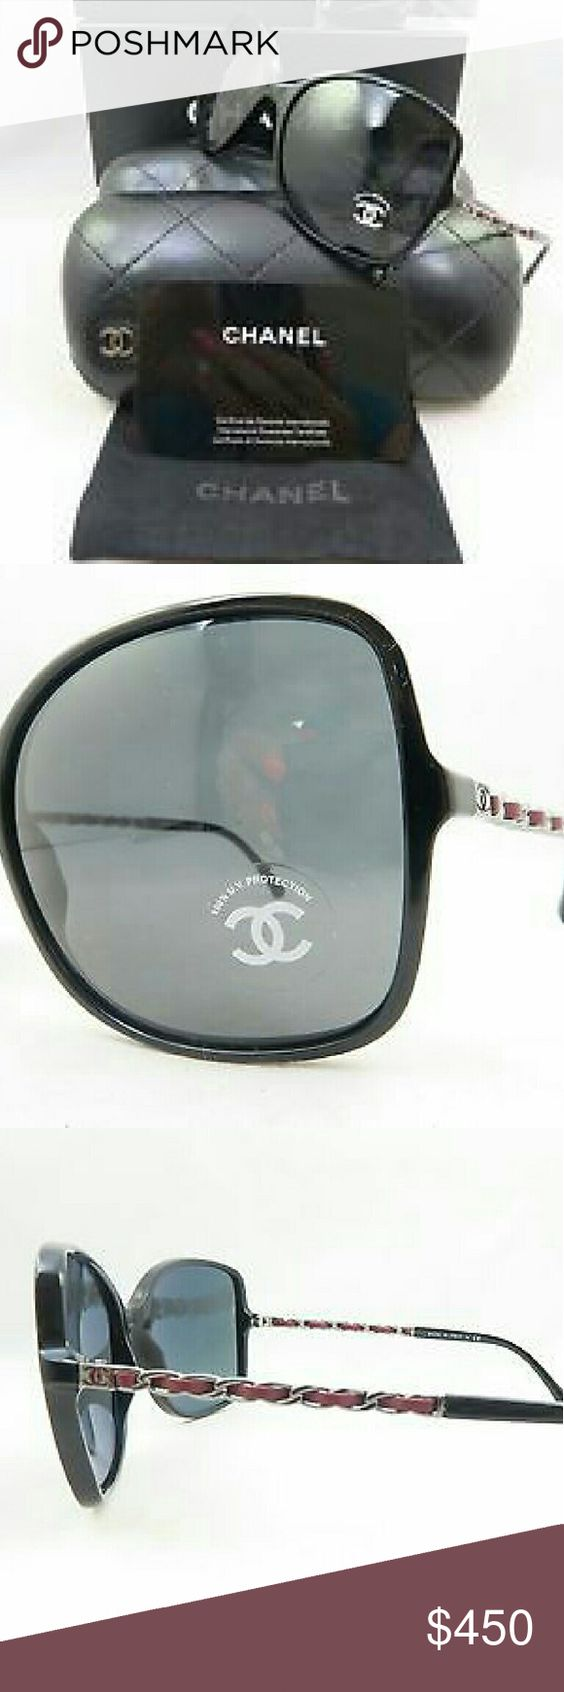 Chanel Polarized Sunglasses New and authentic  Chanel Polarized Sunglasses  Black and red frame  Includes original case, cloth and box Chanel  Accessories Glasses